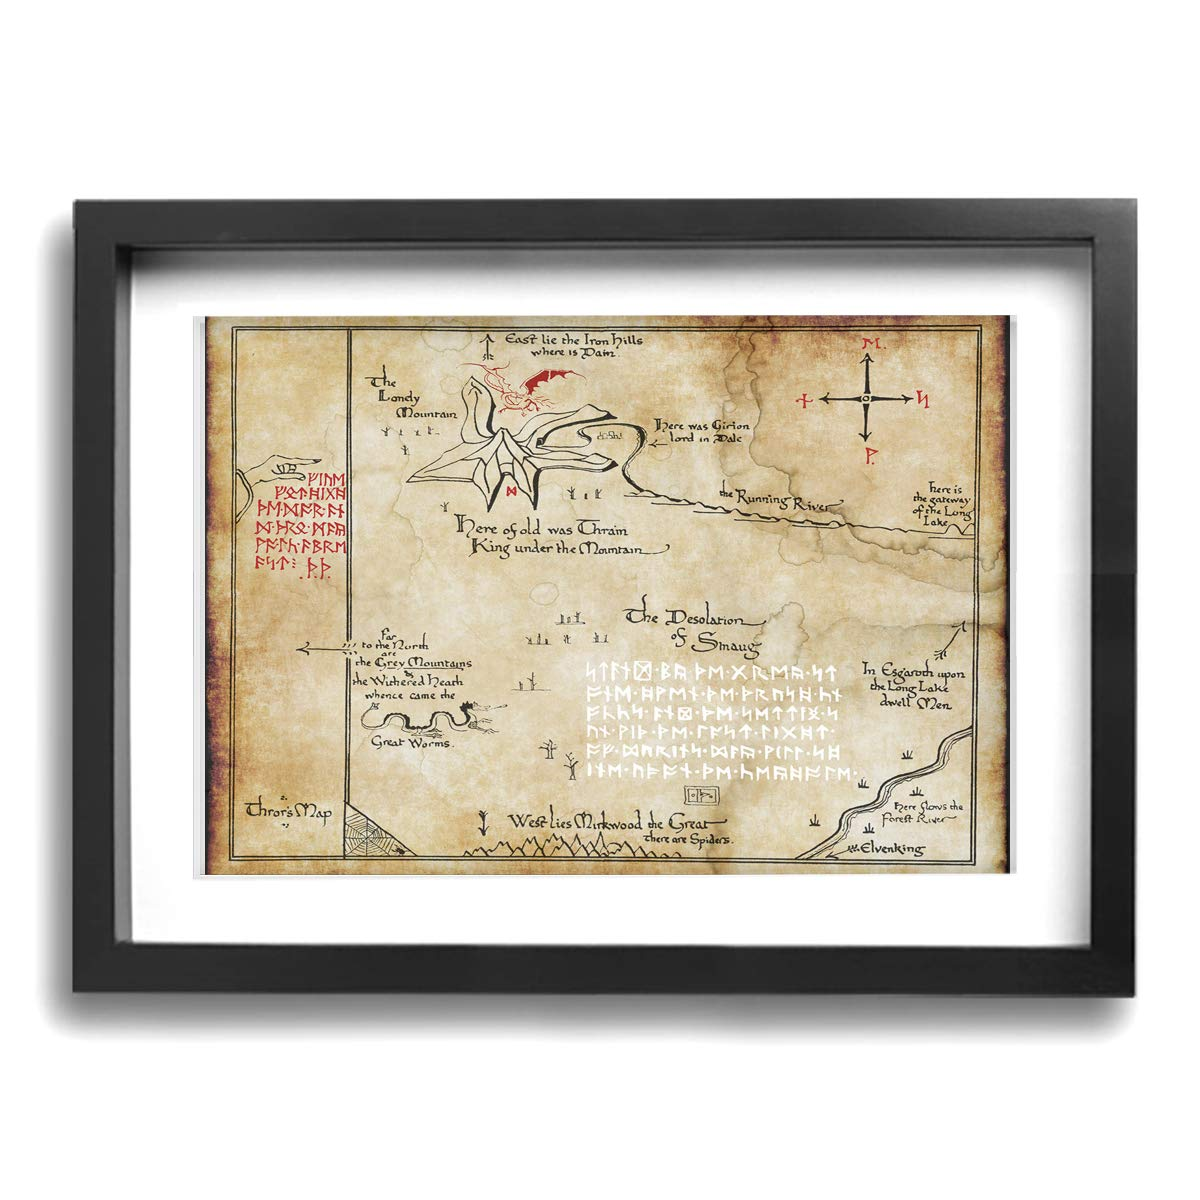 "LP ART Thorins Map - Lord of The Rings Photo Drawing Printed Art Poster Modern Home Decor Wall Art Home Decorations for Home Or Office Decorations 12""x16"" Black Framed"